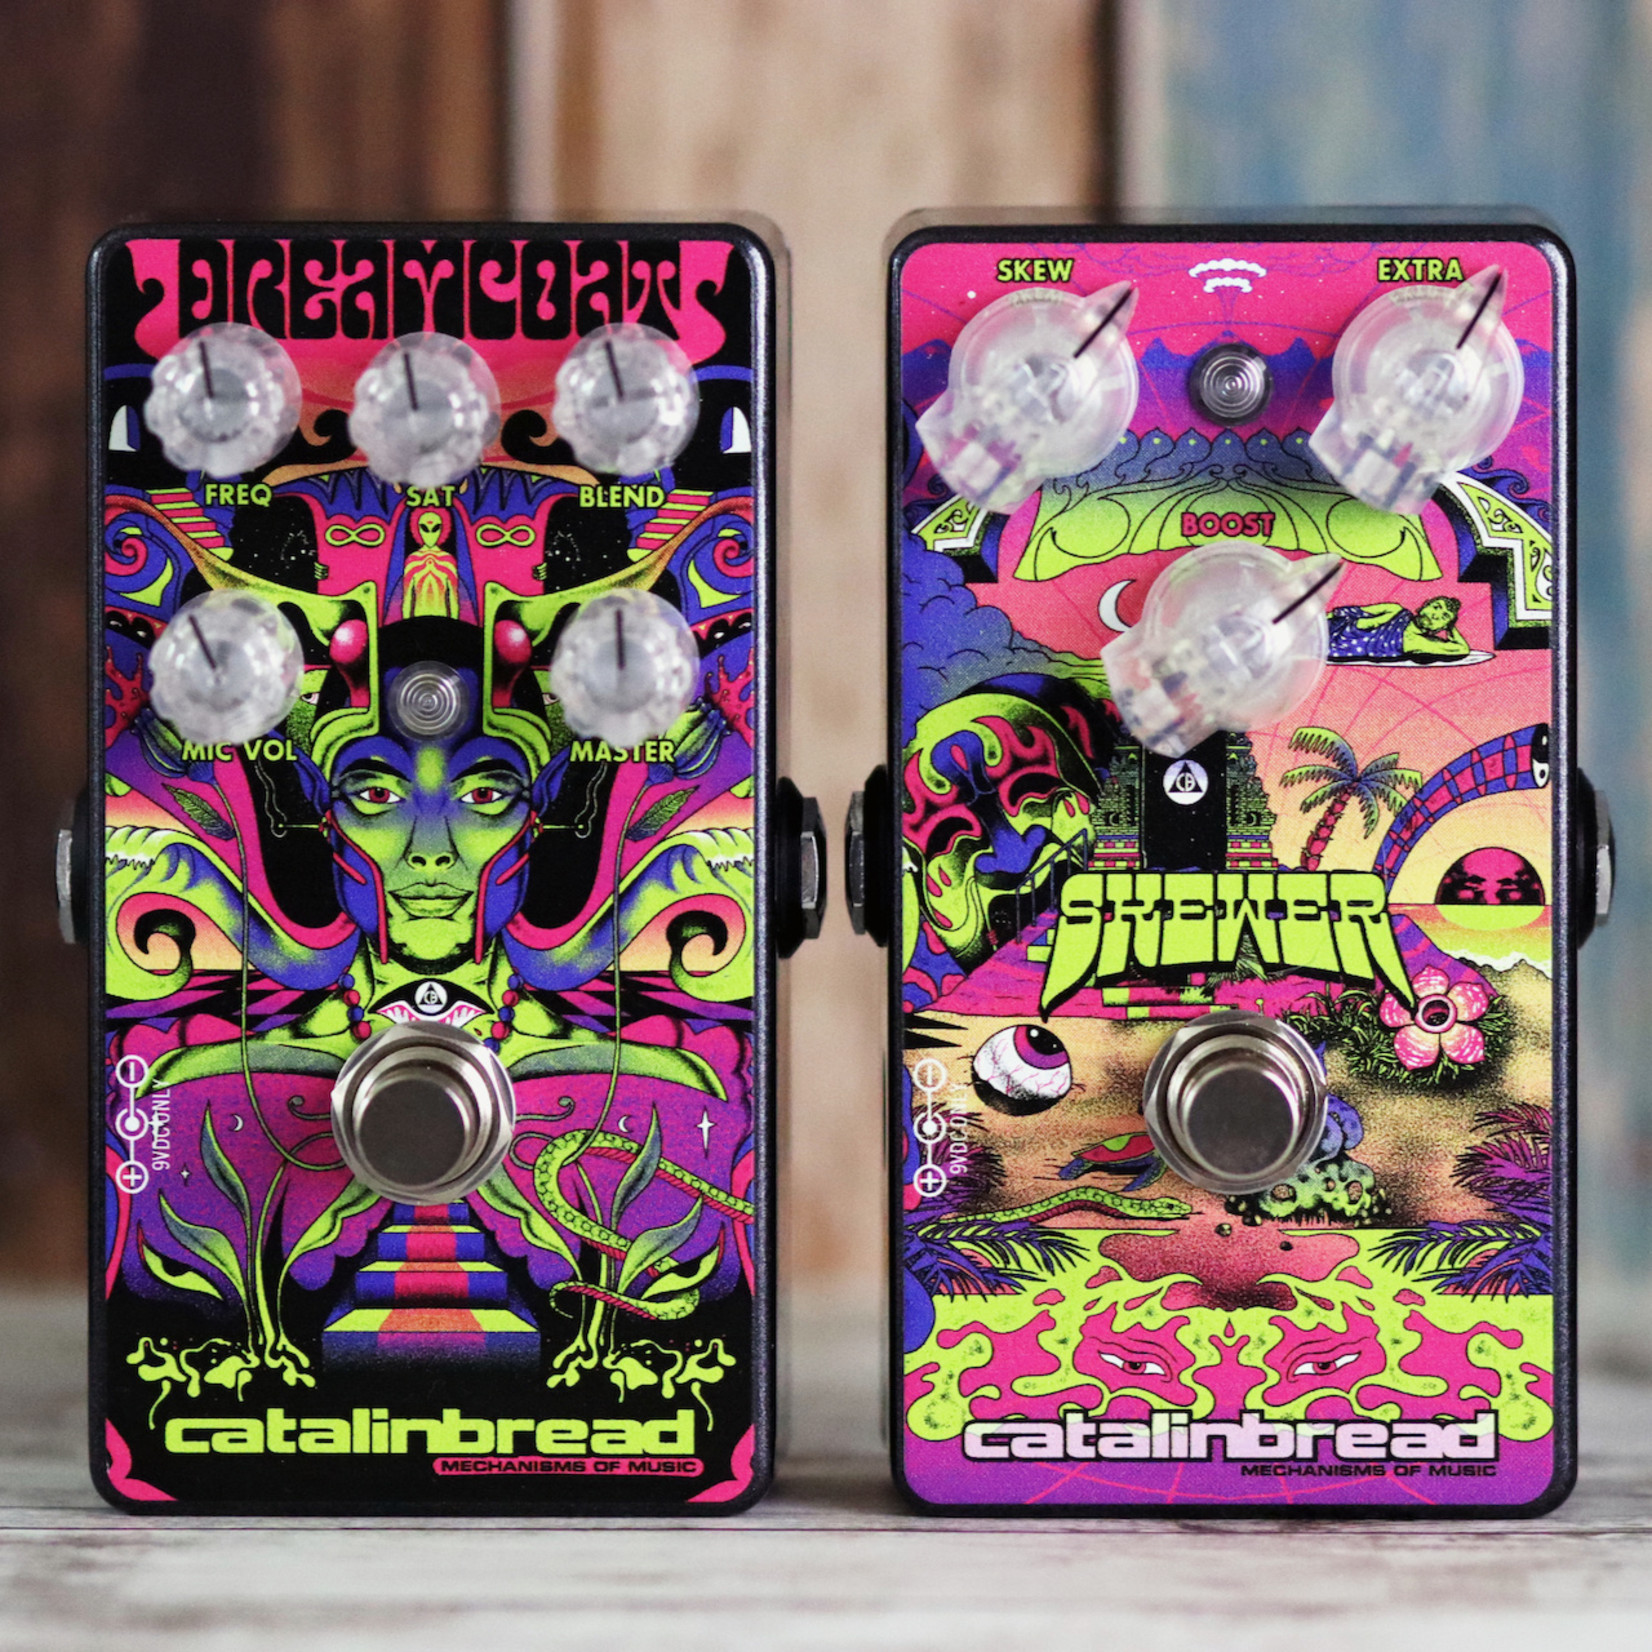 Catalinbread Catalinbread Dreamcoat/Skewer Special Edition Box, Ritchie Blackmore Inspired Pedals (pre-amp/overdrive + treble boost)